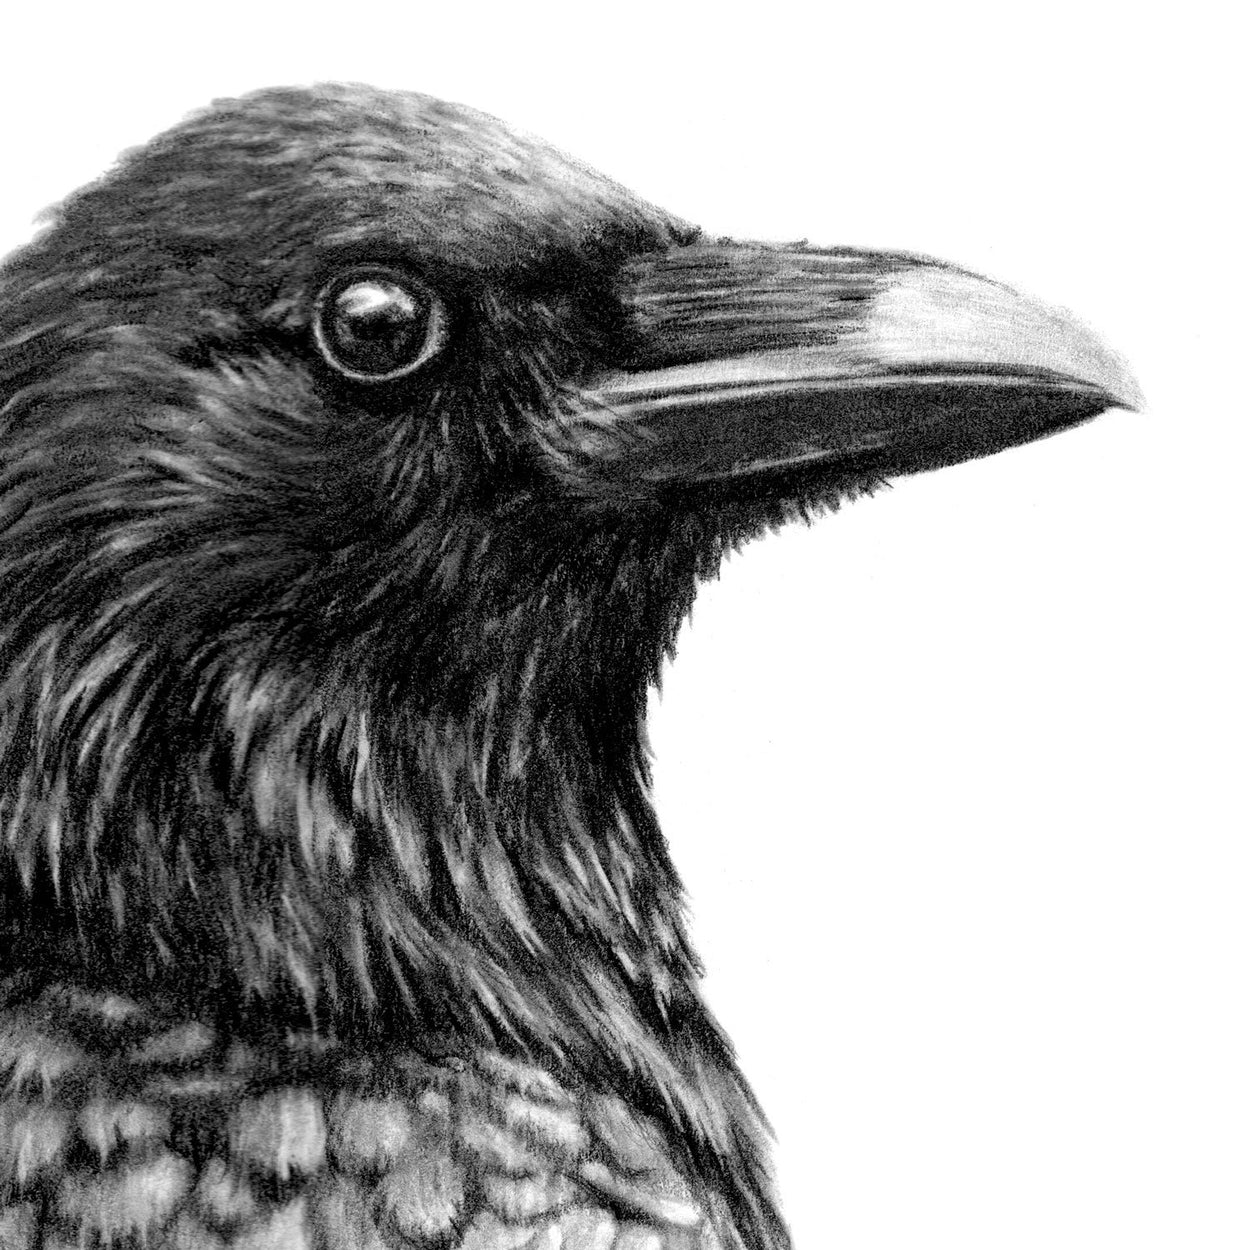 Crow Graphite Close-up - The Thriving Wild